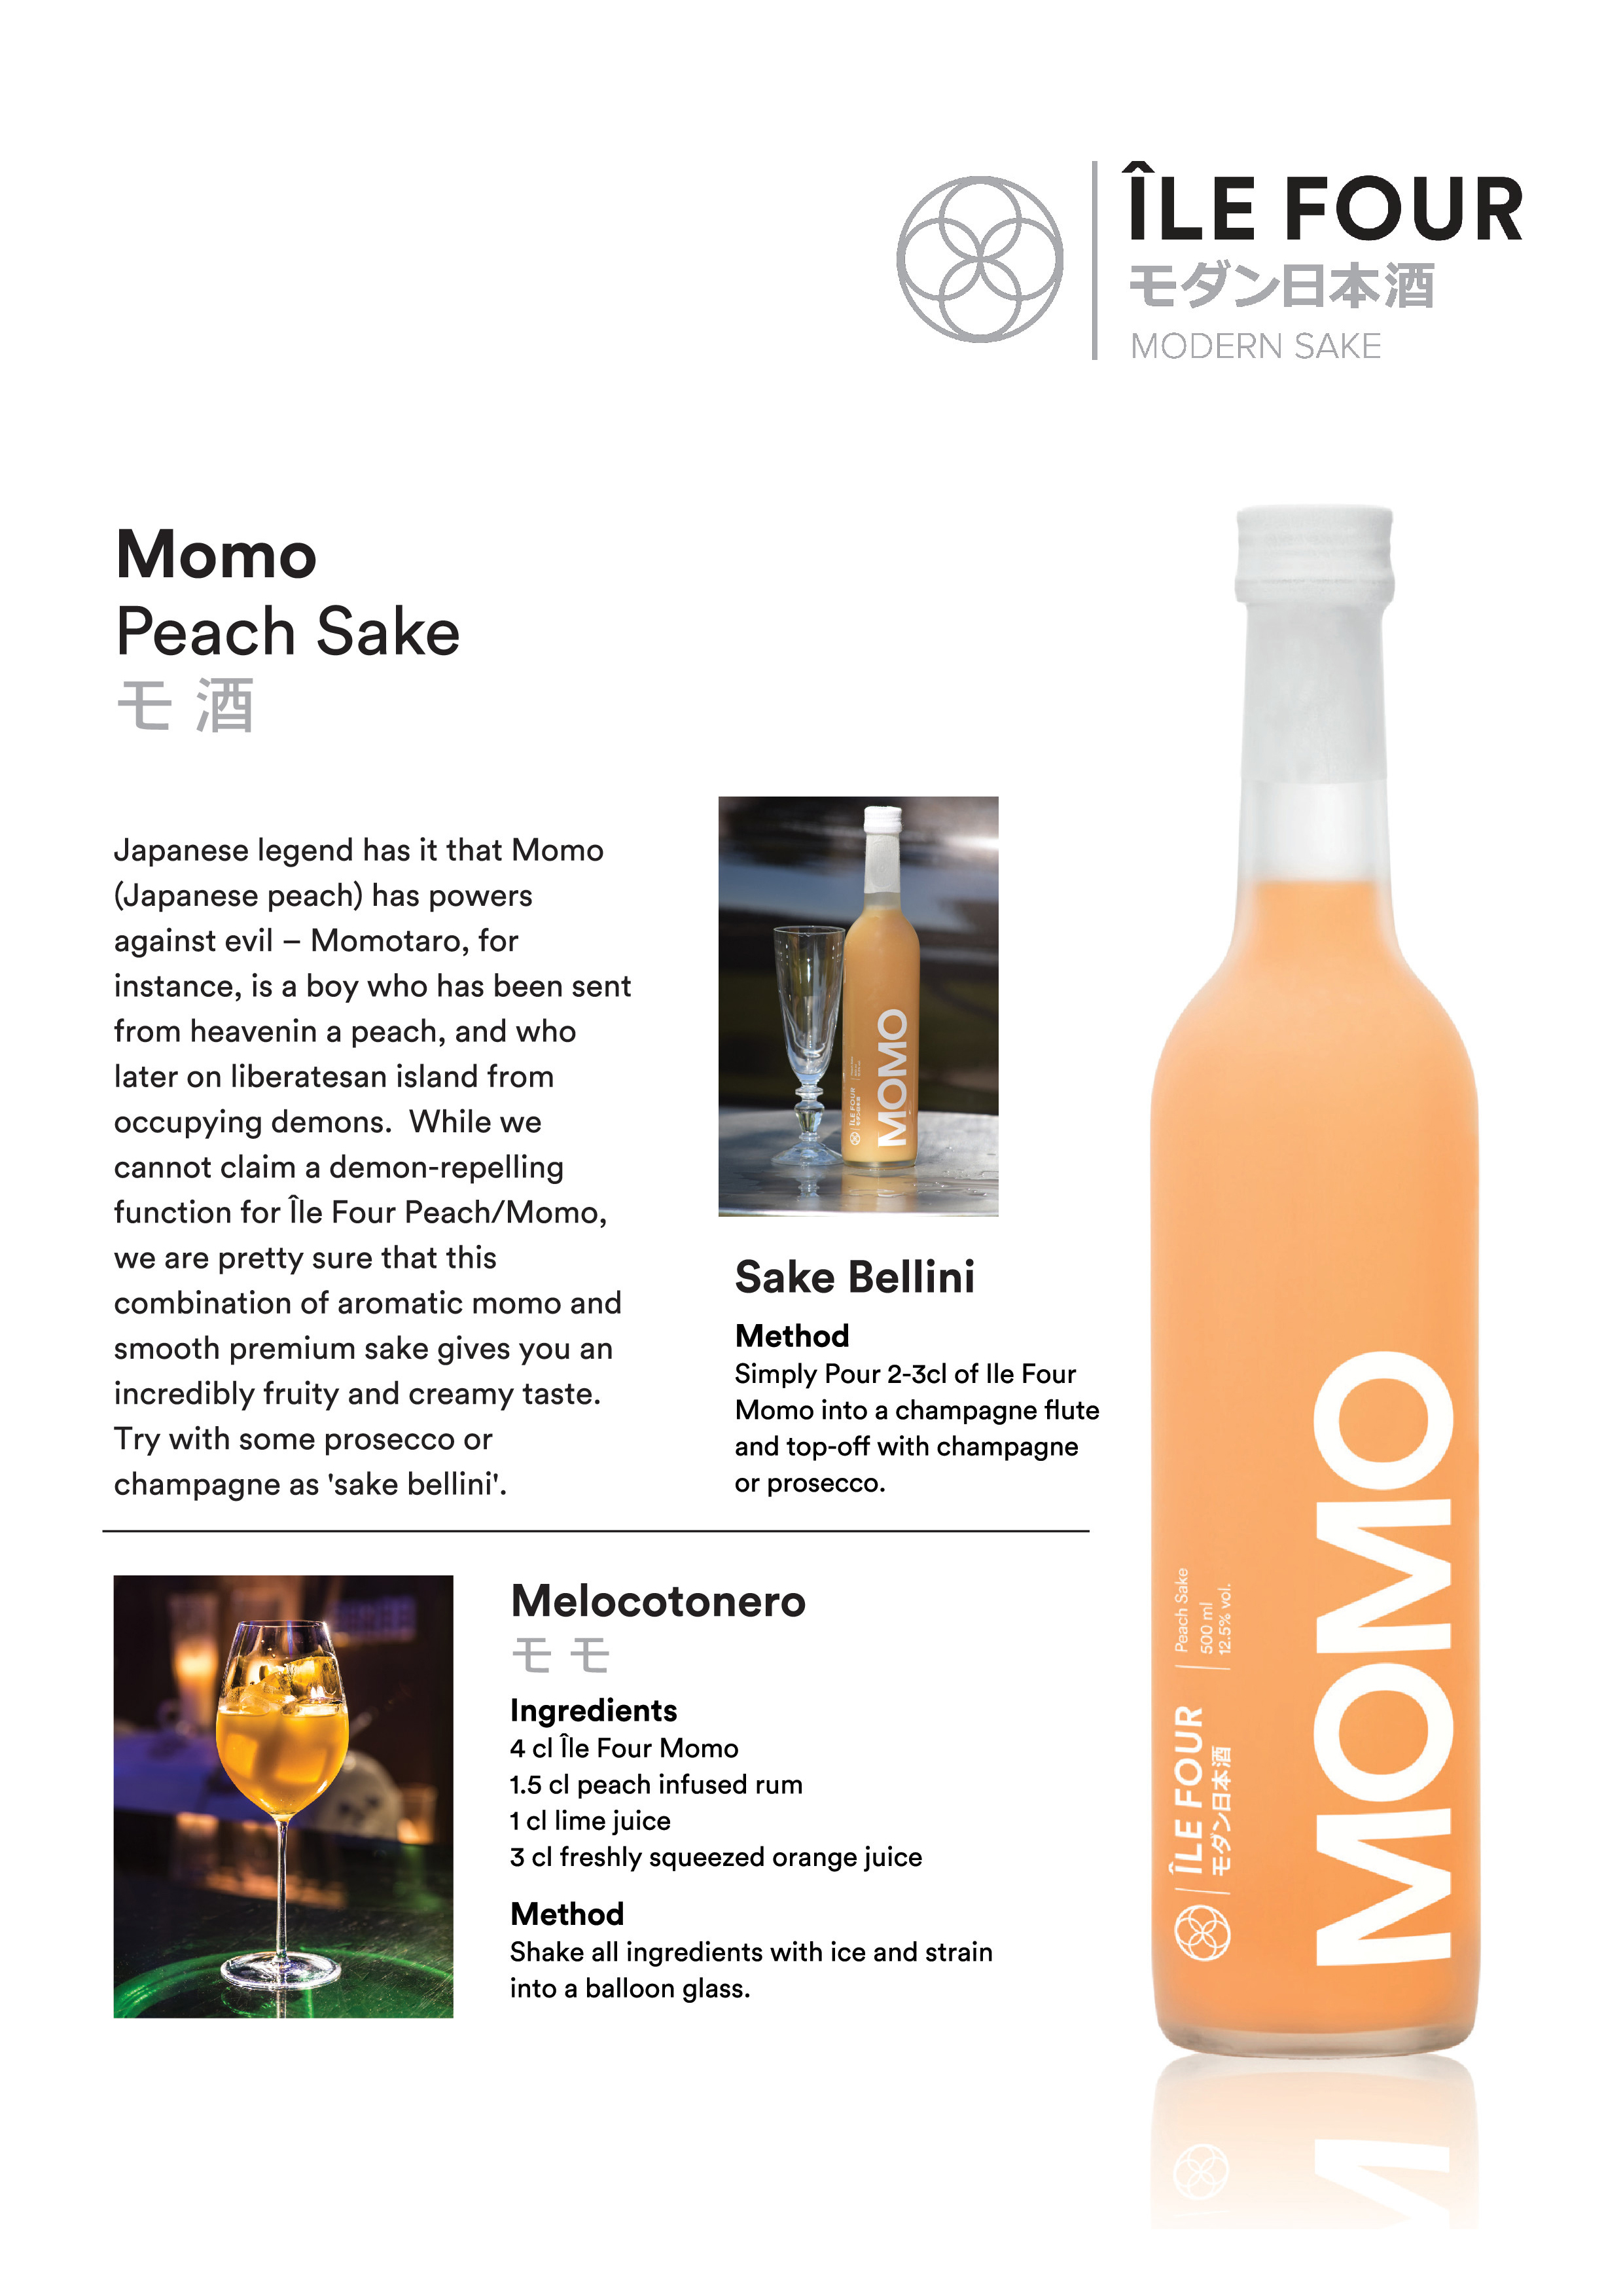 Île Four Momo - Peach Sake Tasting Note